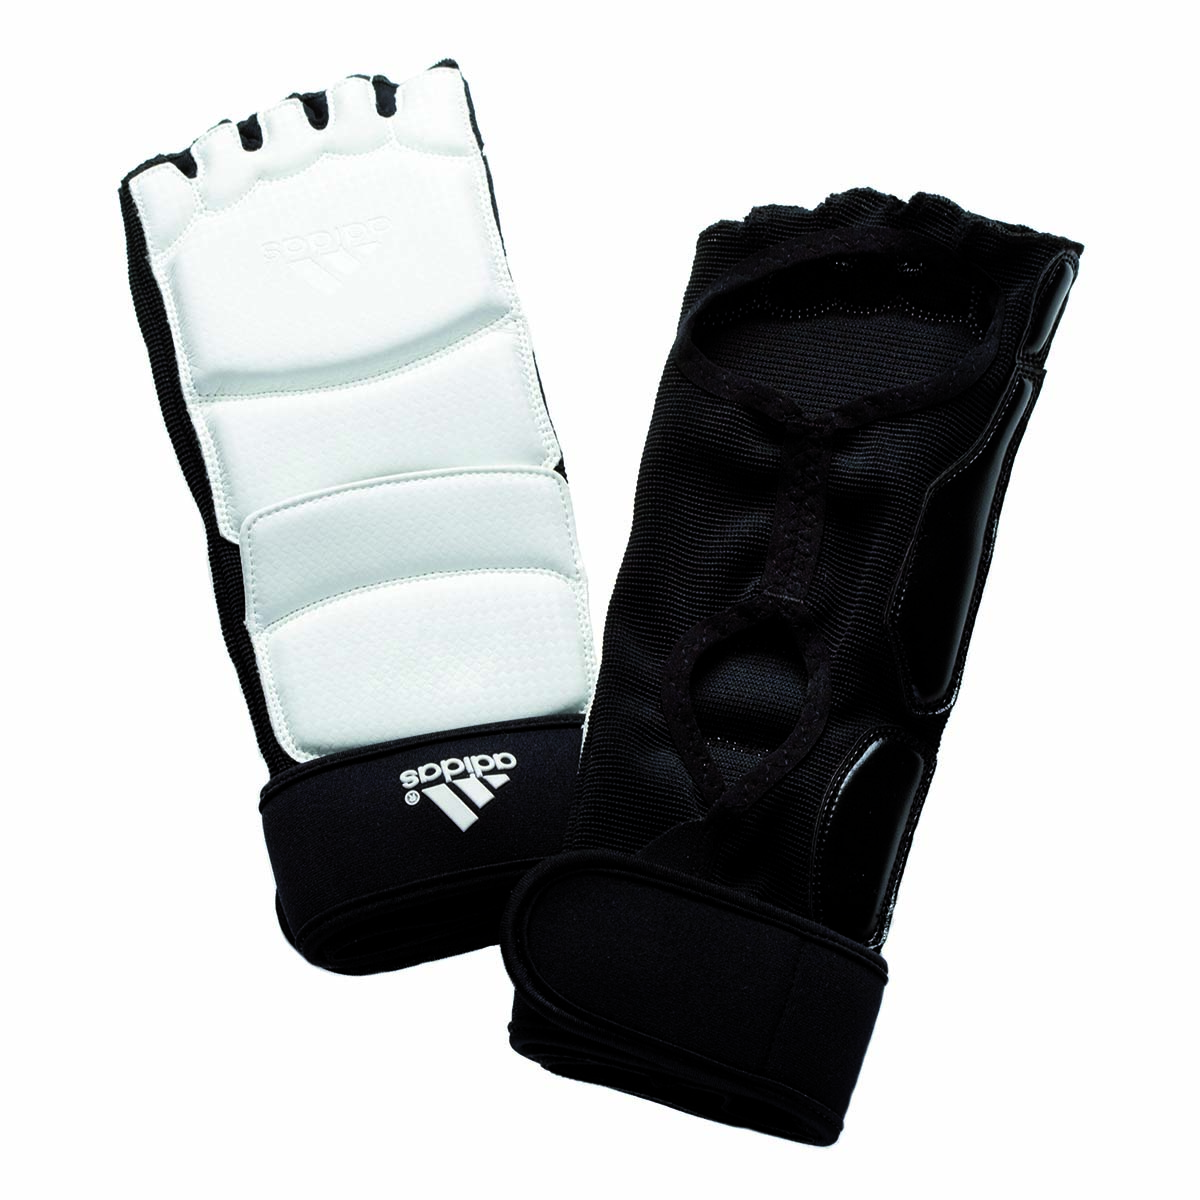 Adidas Fighter Foot Protectors WT Approved -0